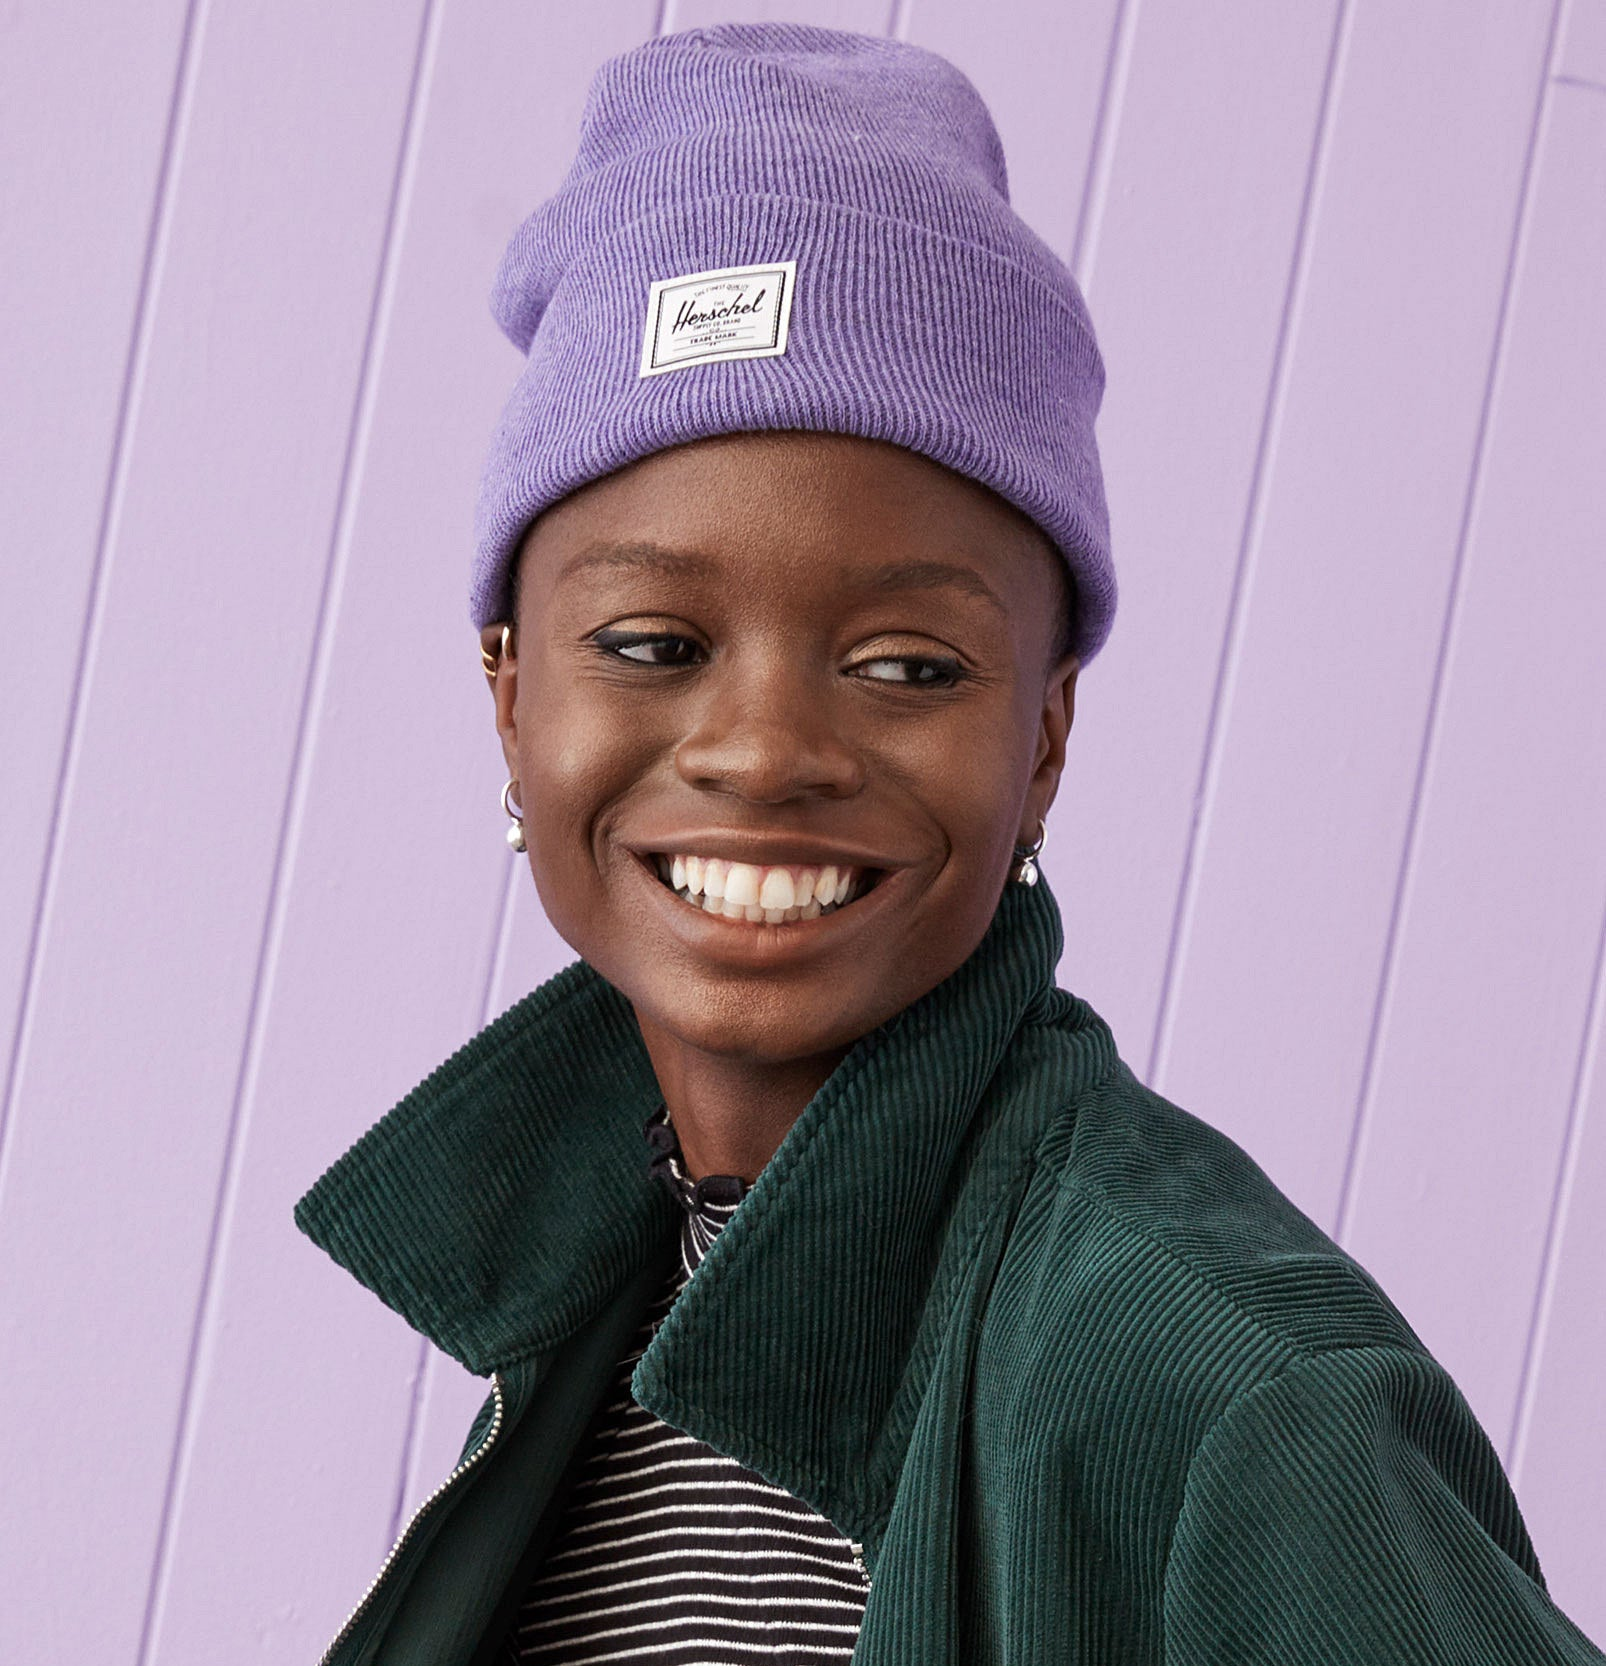 A person wearing the Herschel beanie and smiling